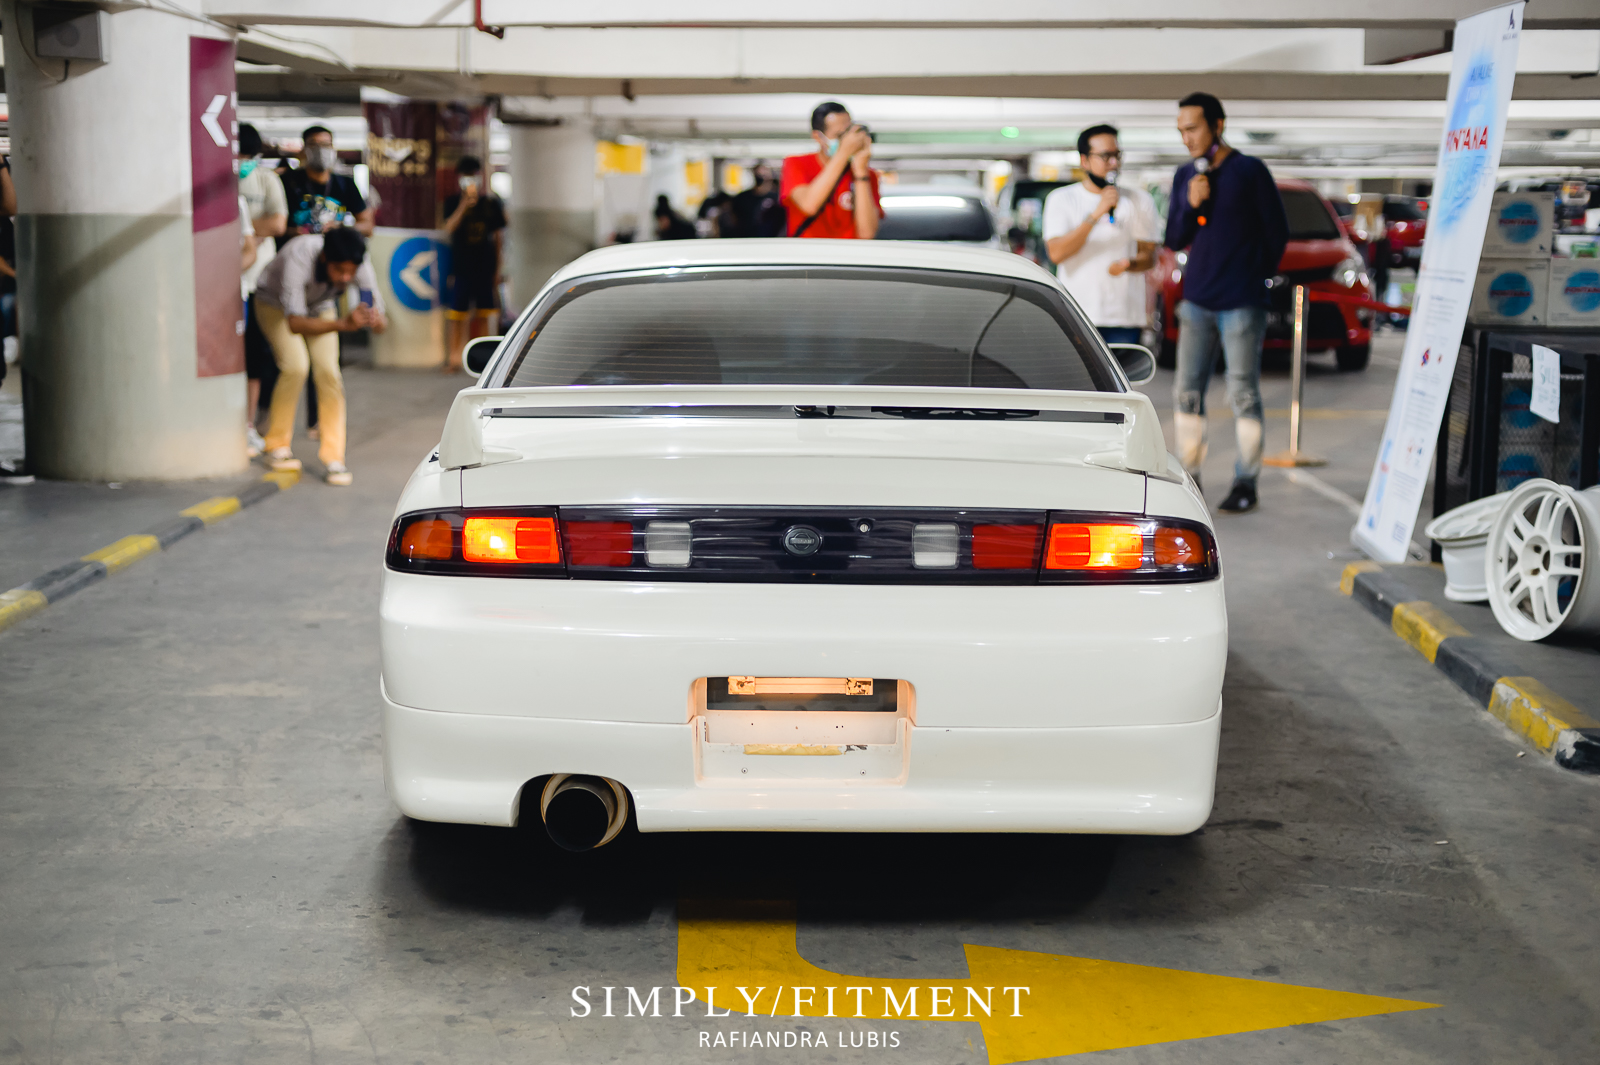 LOWFITMENT DAY 16 - DAY 2 (12 DESEMBER 2020)